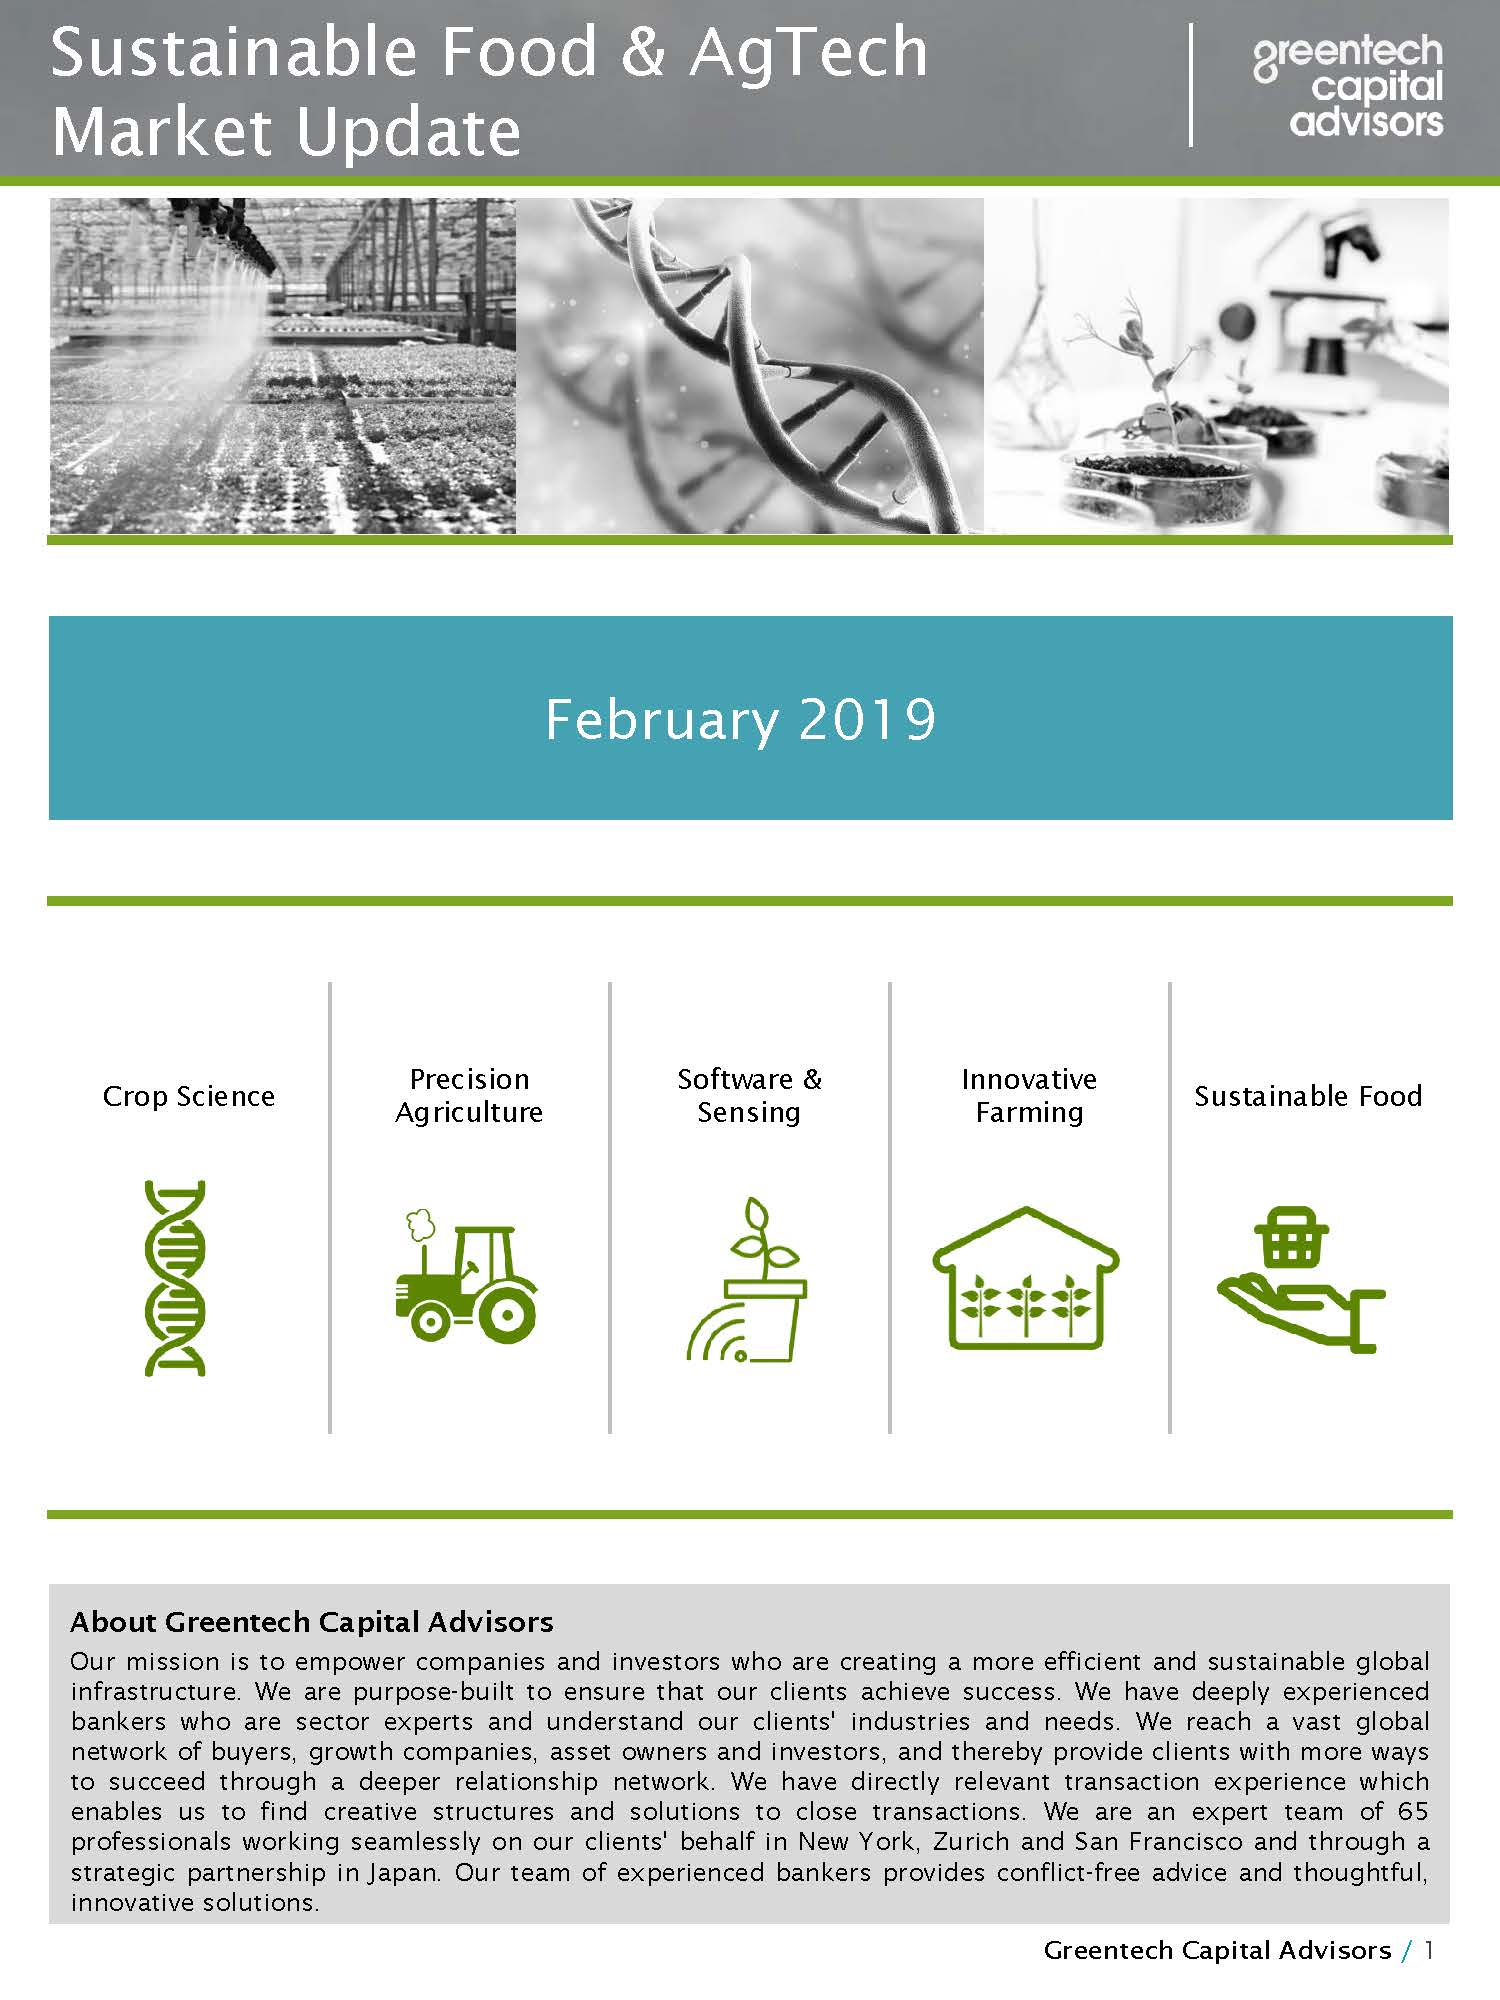 Sustainable Food & AgTech Market Update Newsletter - February 2019